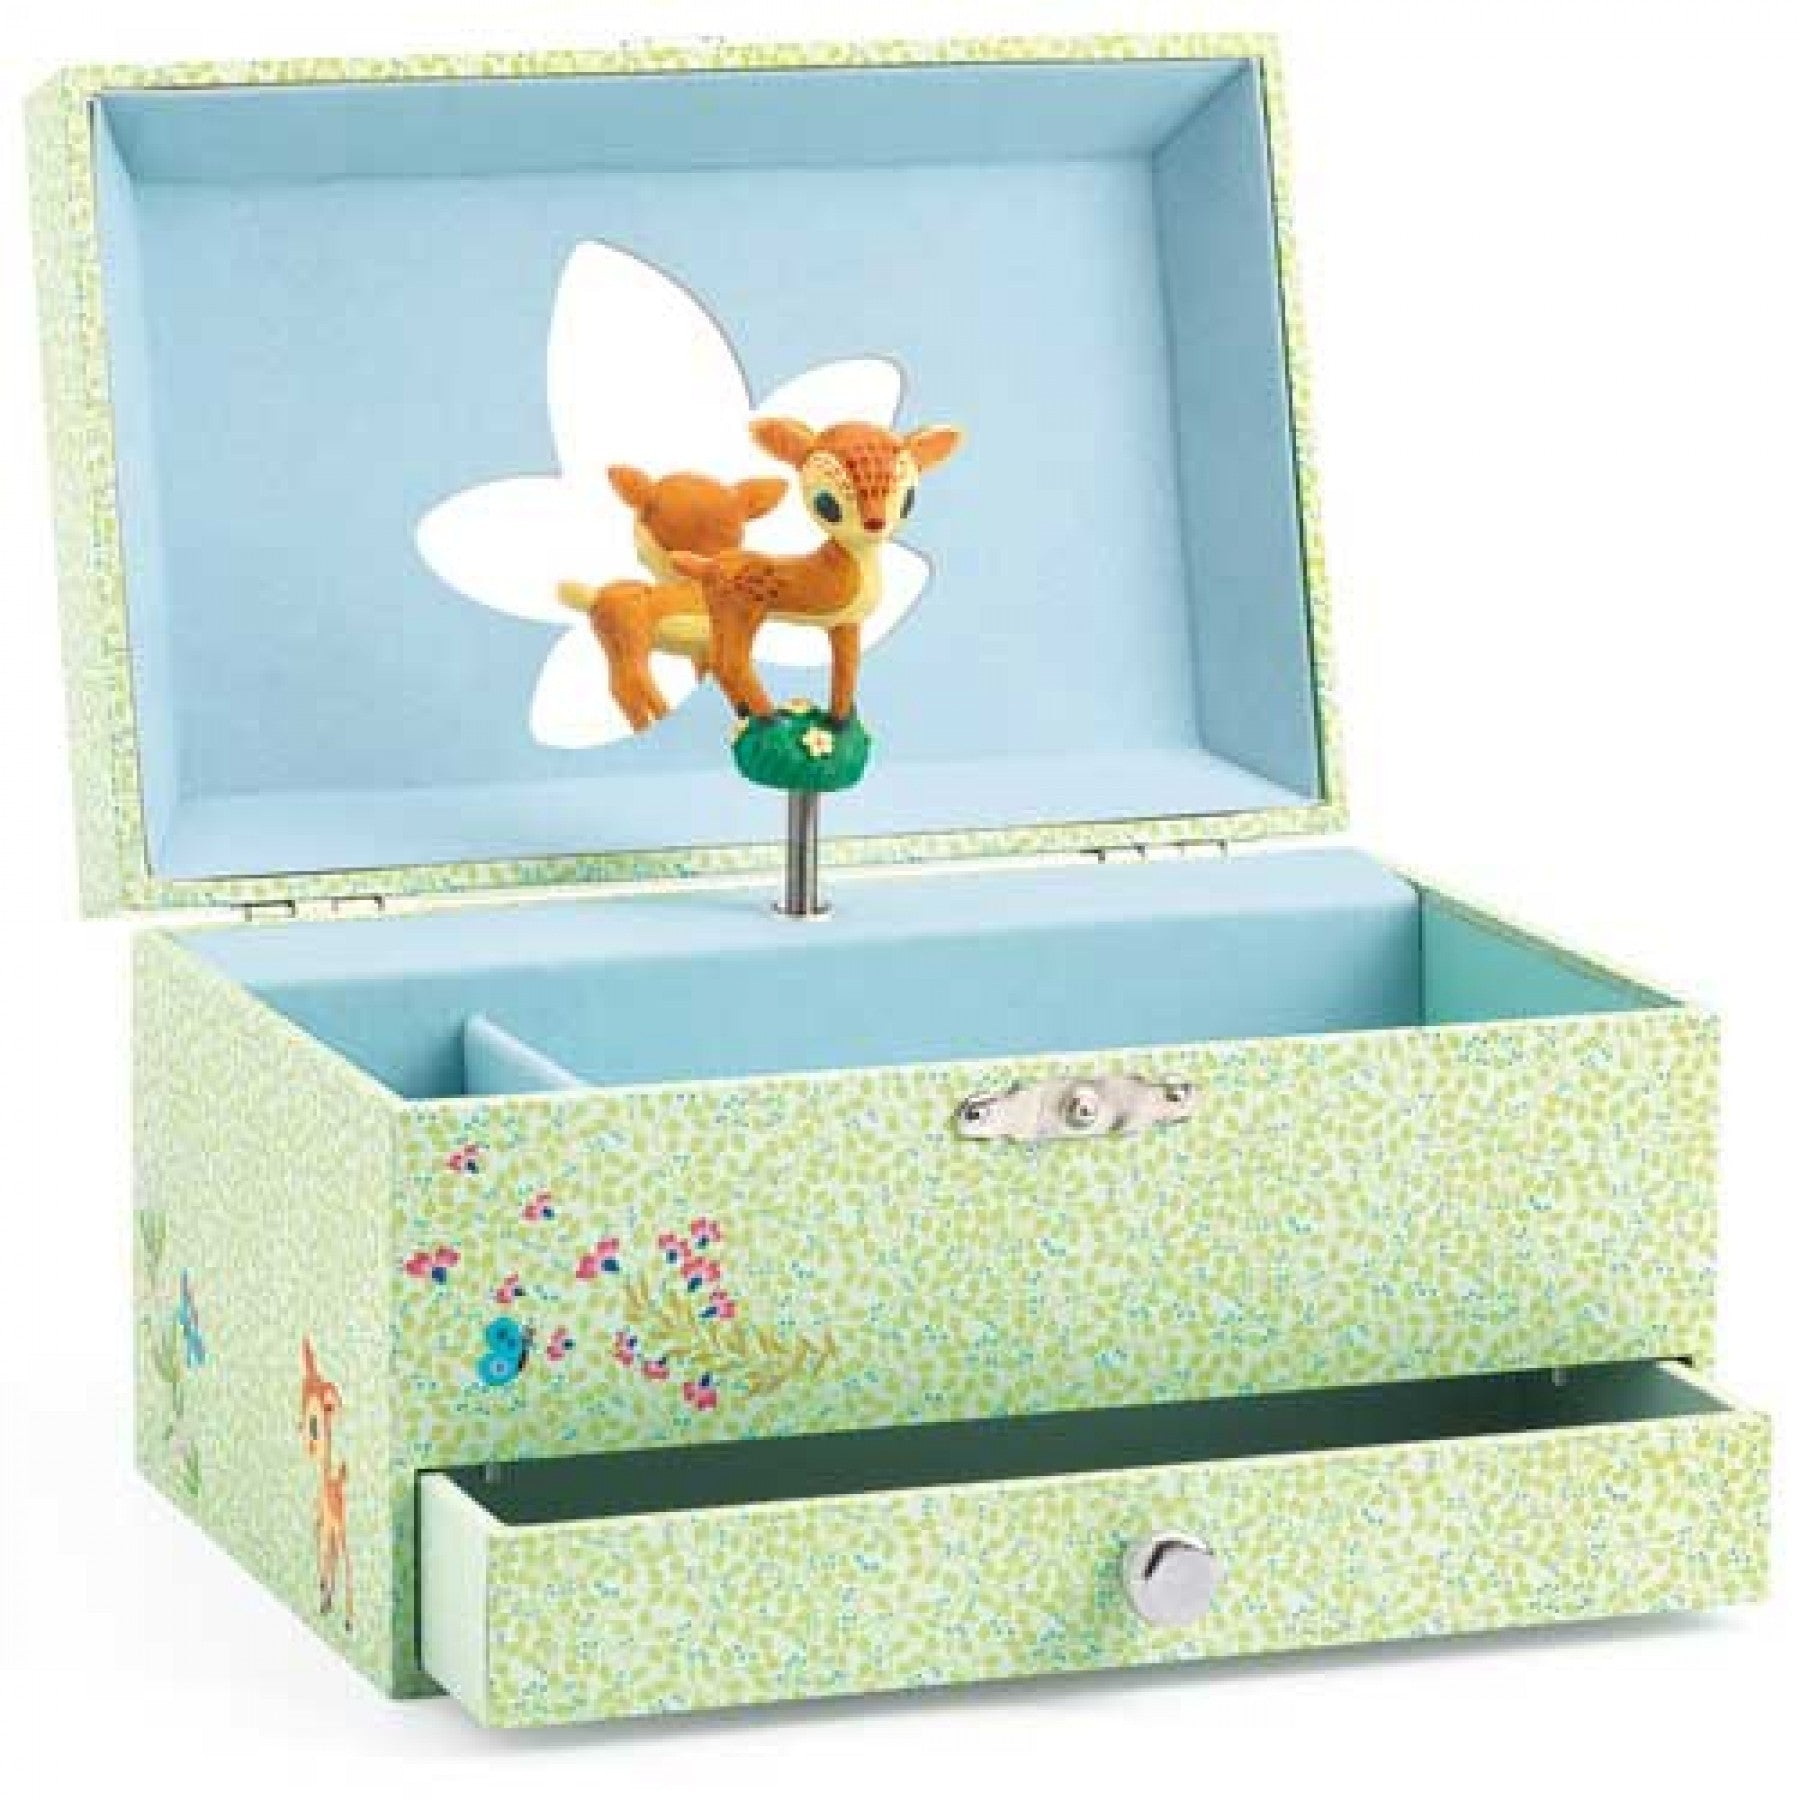 The Fawn's Song - Musical Box, open displaying mirror and fawn